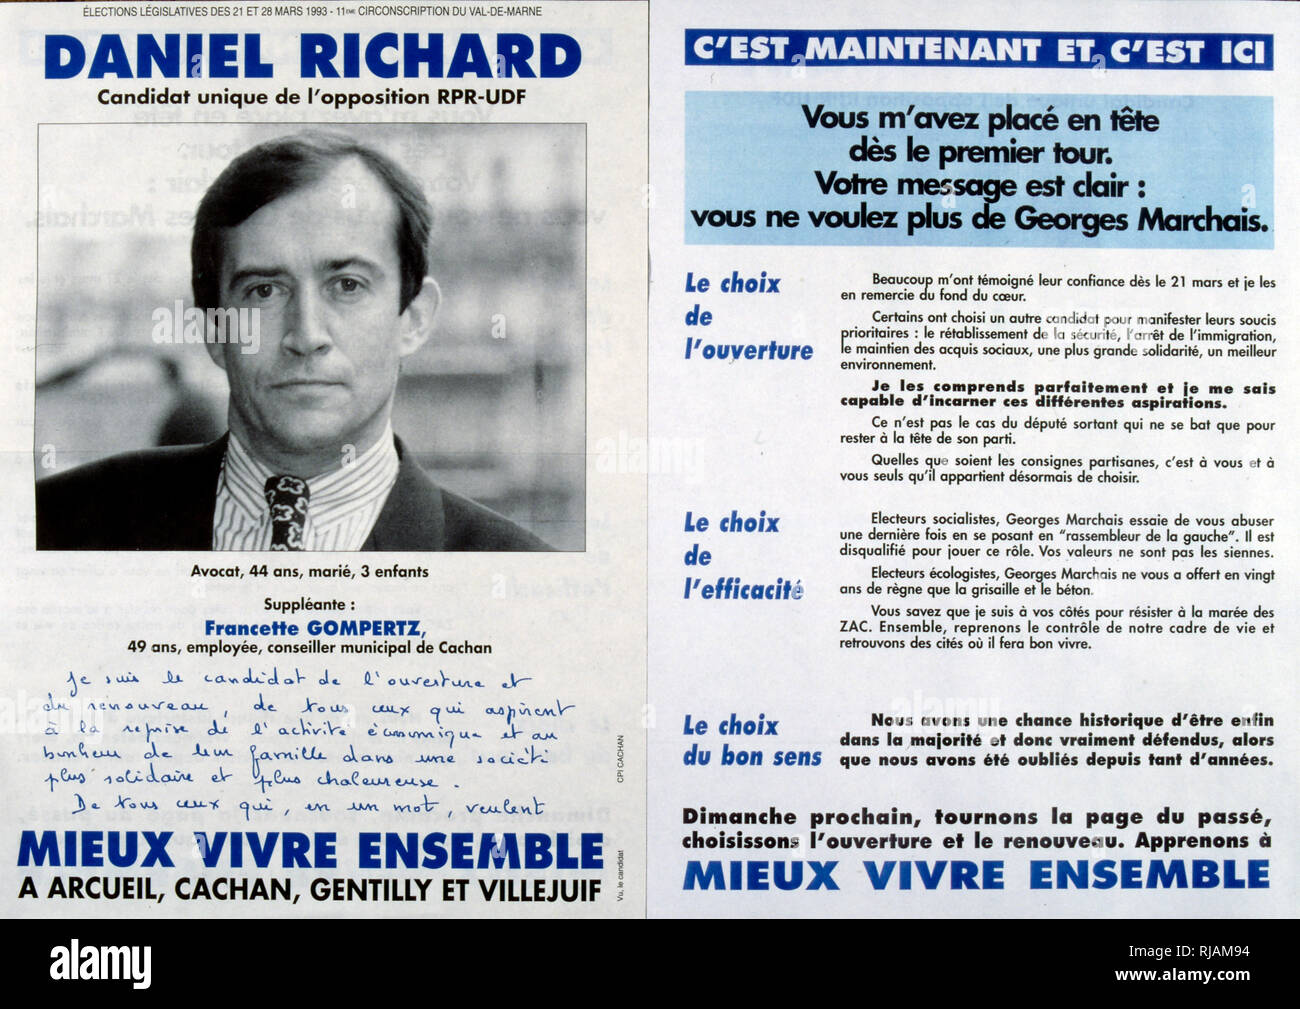 Election poster for Daniel Richard French political candidate for the National Assembly for the UDF party 1993. The Union for French Democracy (French: Union pour la Democratie Francaise, UDF) was a centre-right political party in France. It was founded in 1978 as an electoral alliance to support President Valery Giscard d'Estaing in order to counterbalance the Gaullist preponderance over the political right in France - Stock Image